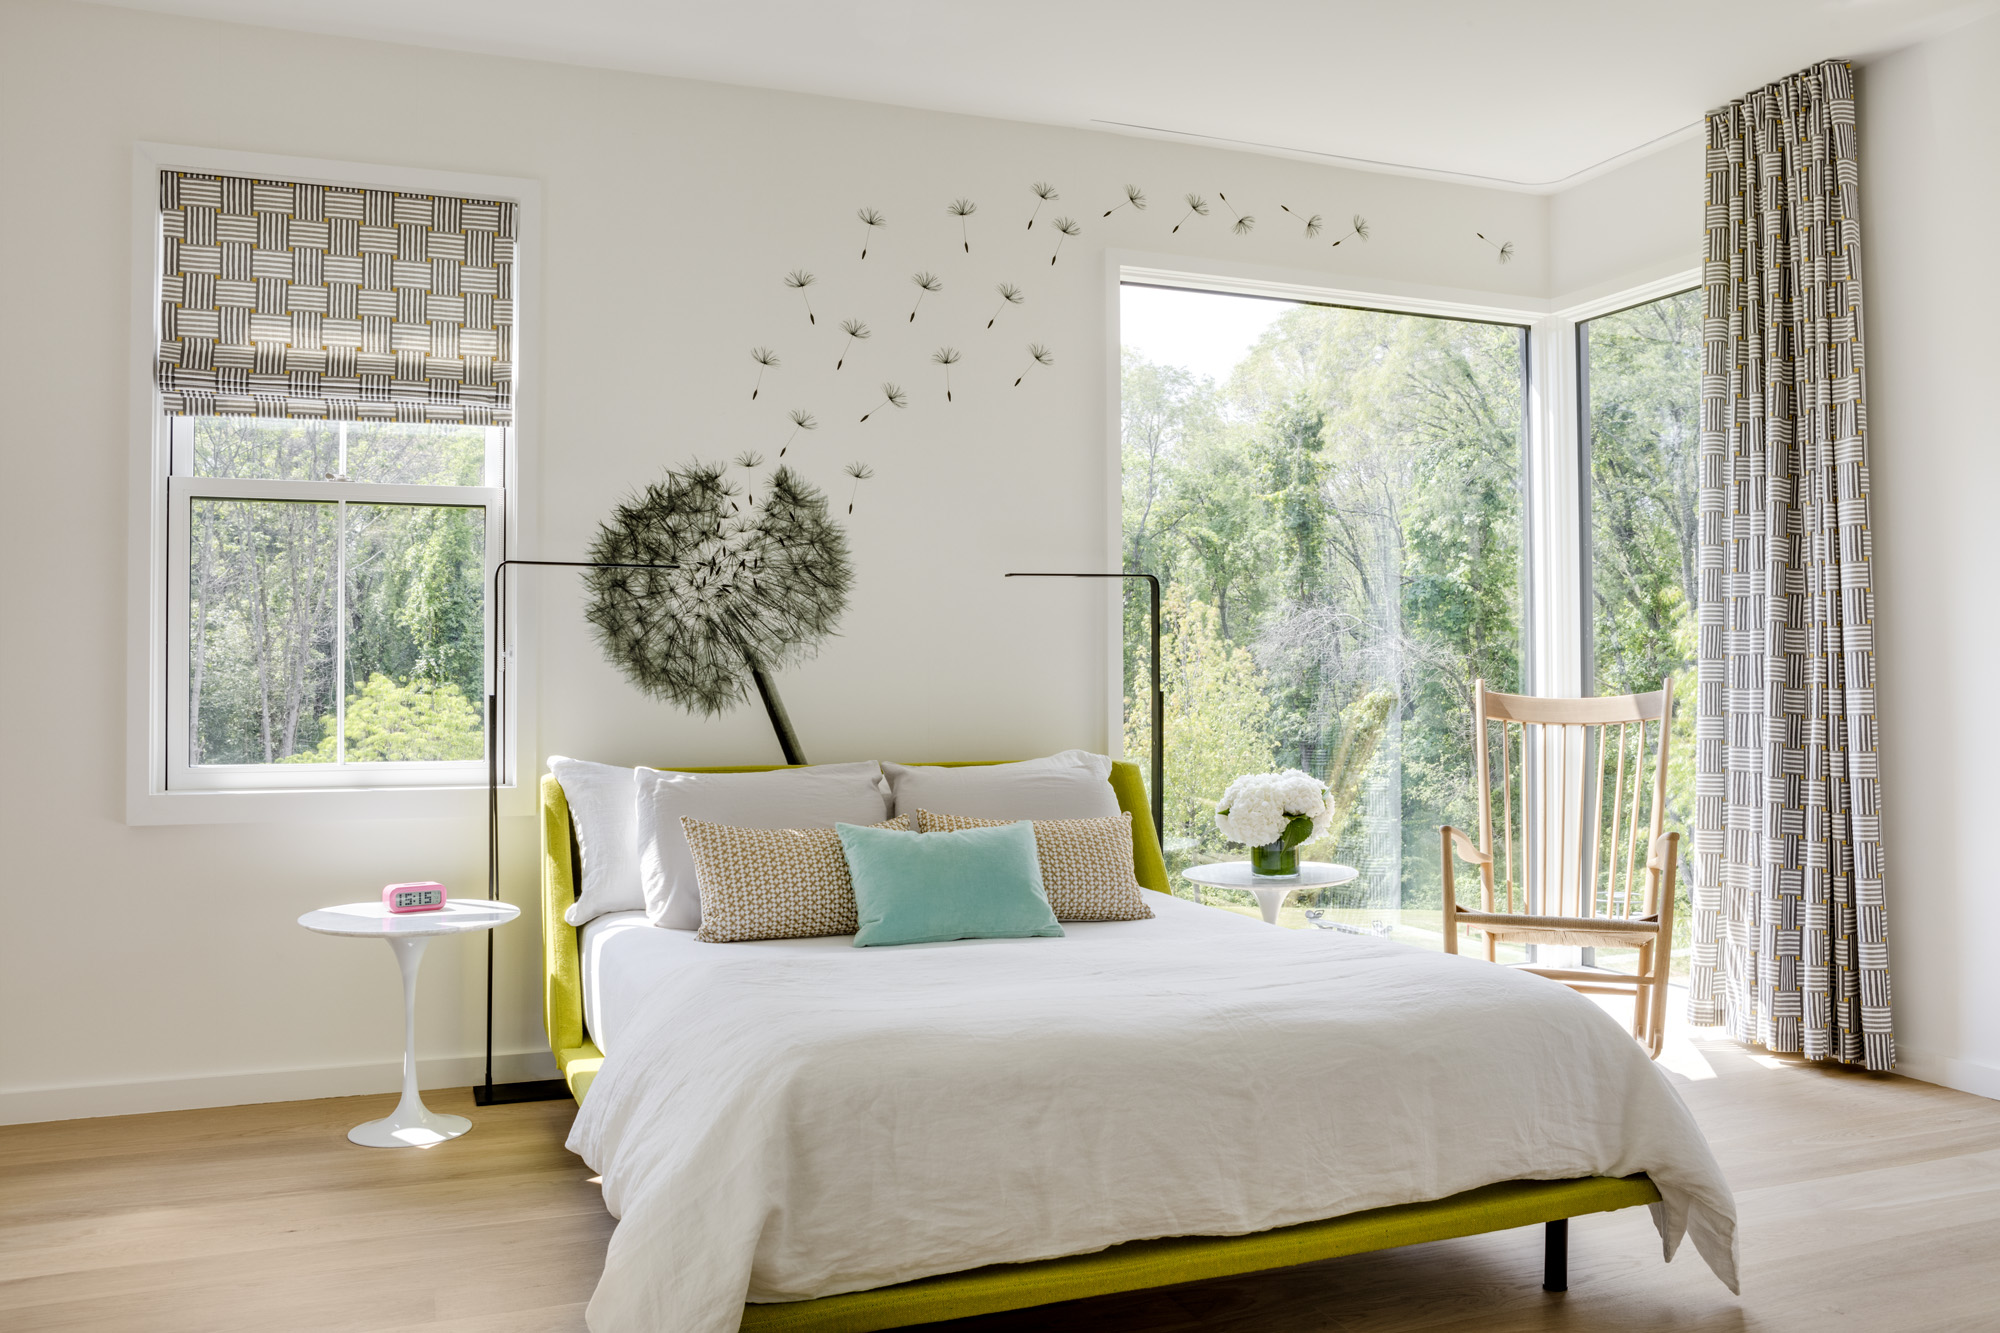 The second guest bedroom brims with natural light. Behind the Blu Dotbed, a dandelion decal from Wall &Decò serves as an artful wall accent. Matching printed shades and curtains from The Shade Store are a creative touch.